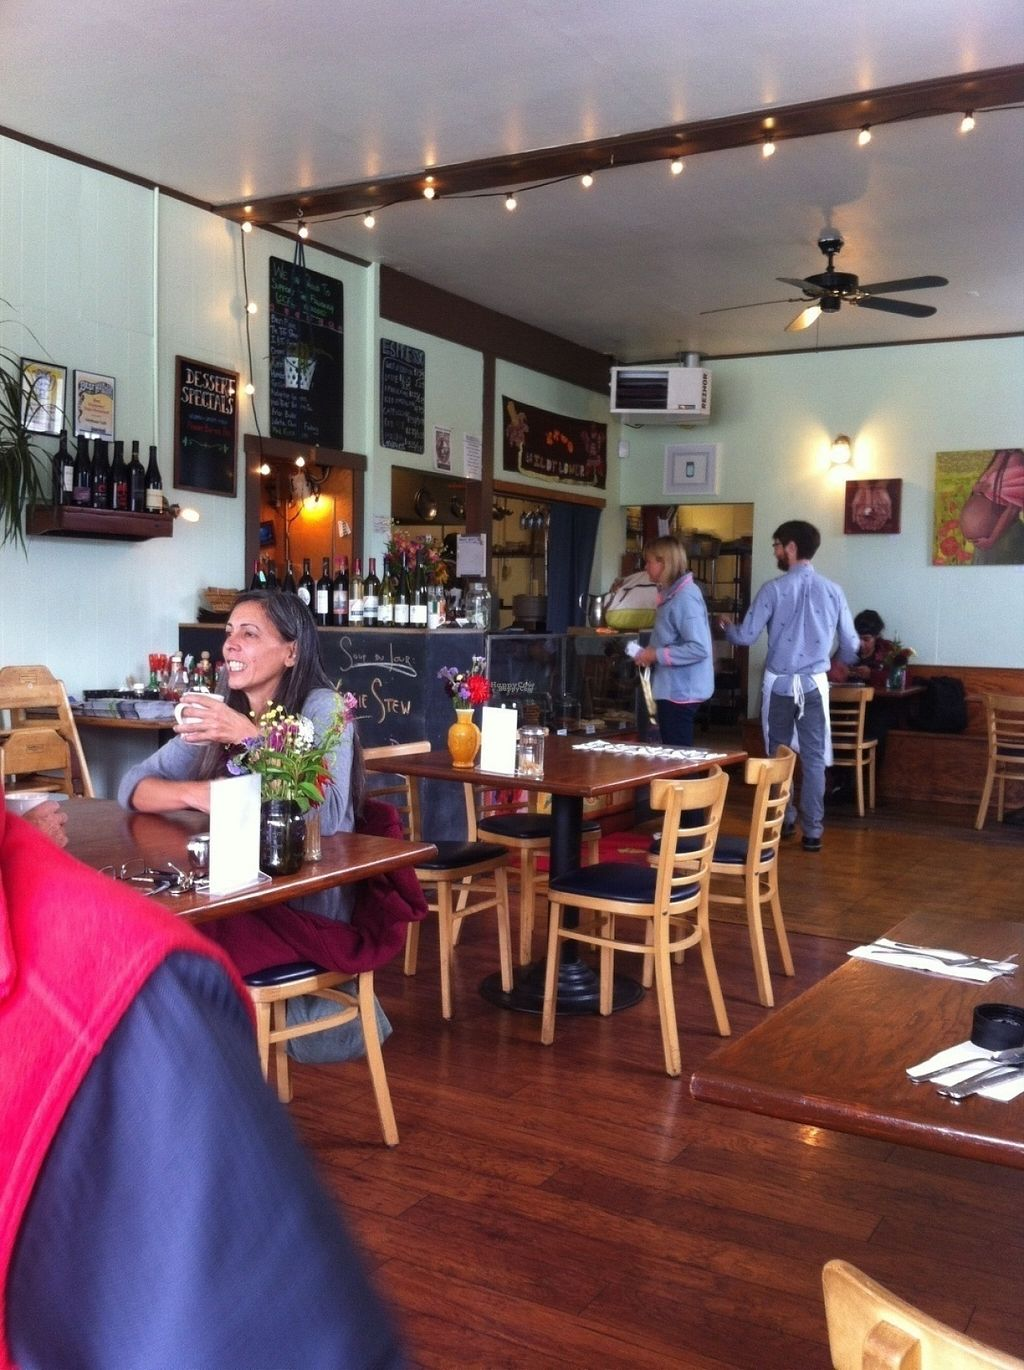 """Photo of Wildflower Cafe and Bakery  by <a href=""""/members/profile/BananaAddict"""">BananaAddict</a> <br/>Lunchtime <br/> August 17, 2016  - <a href='/contact/abuse/image/1480/169370'>Report</a>"""